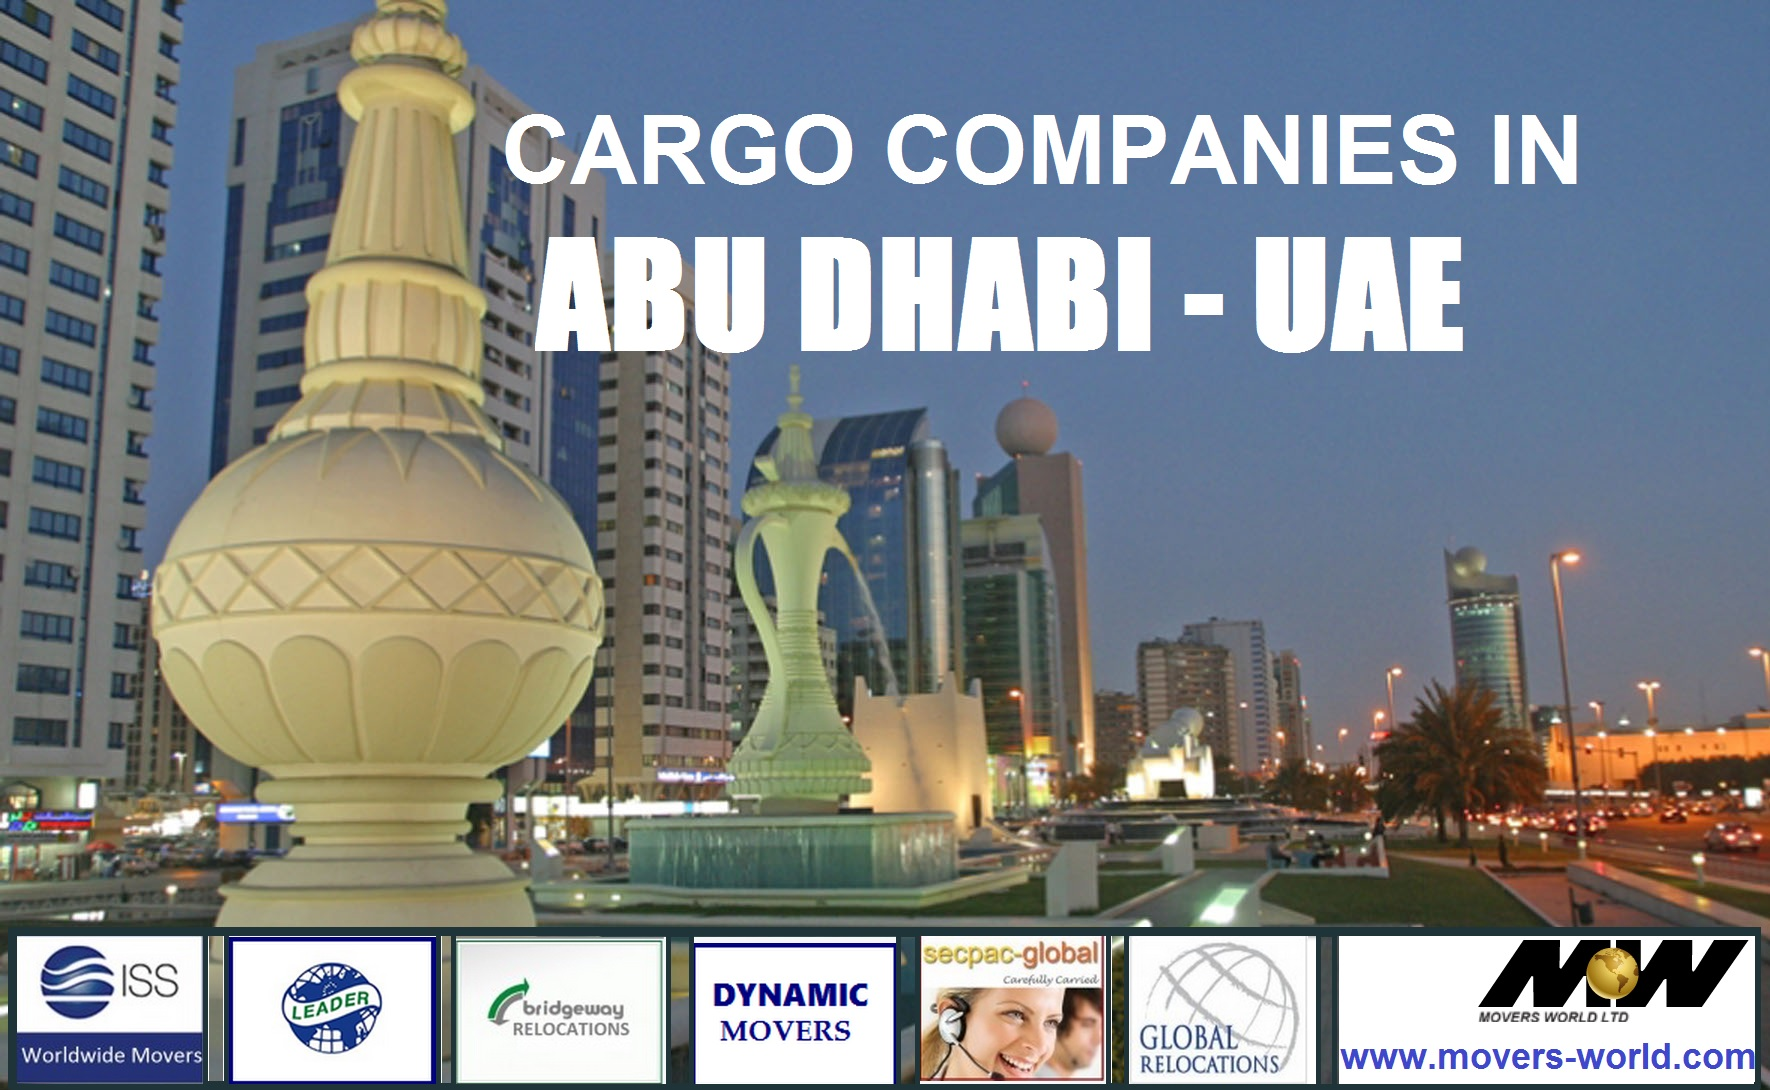 Cargo companies in abu dhabi moving reviews for Architectural design companies in abu dhabi